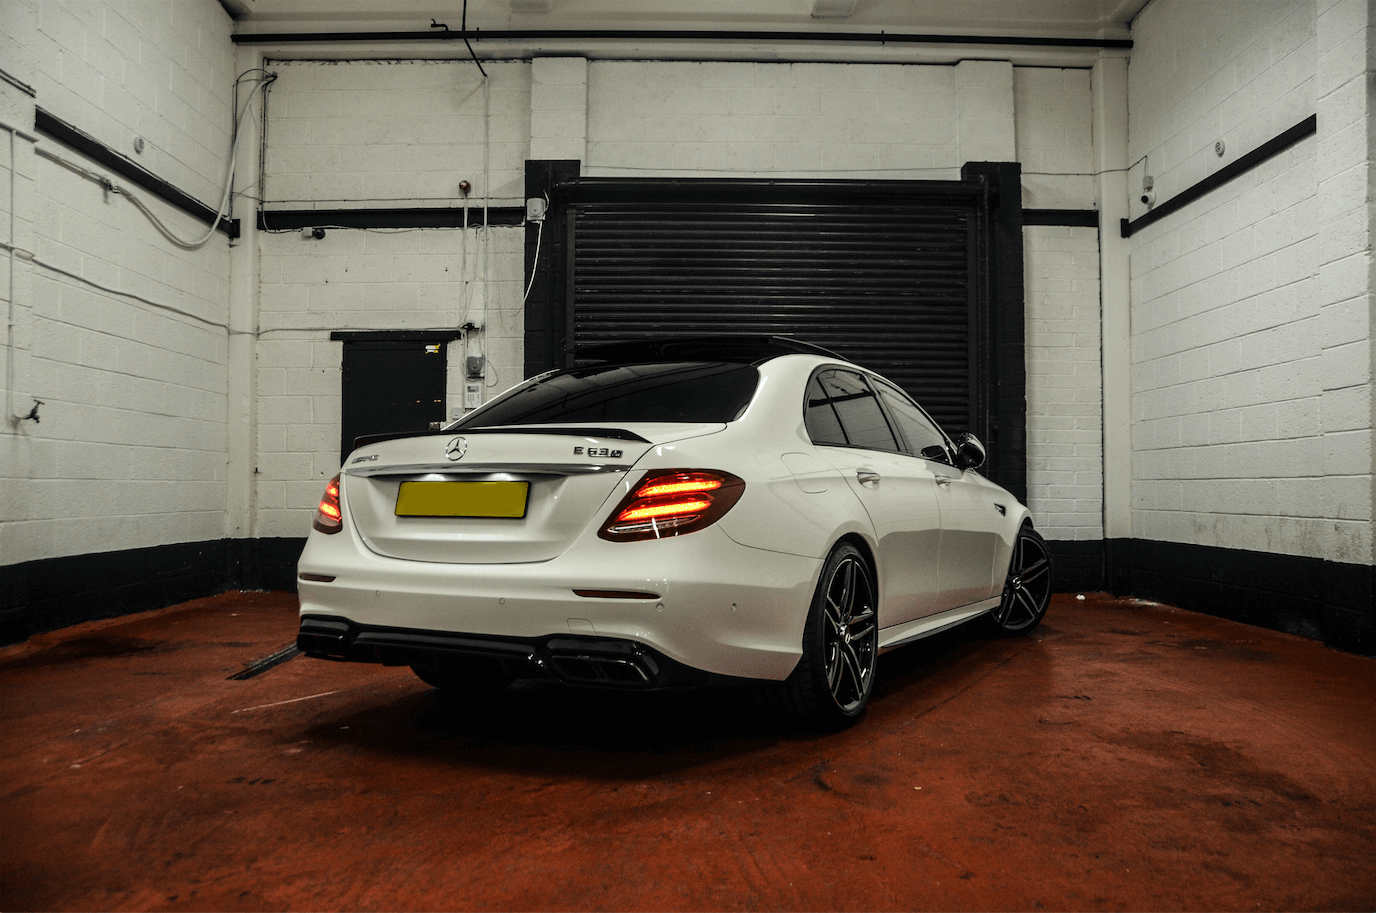 Mercedes-Benz E63s AMG Hire